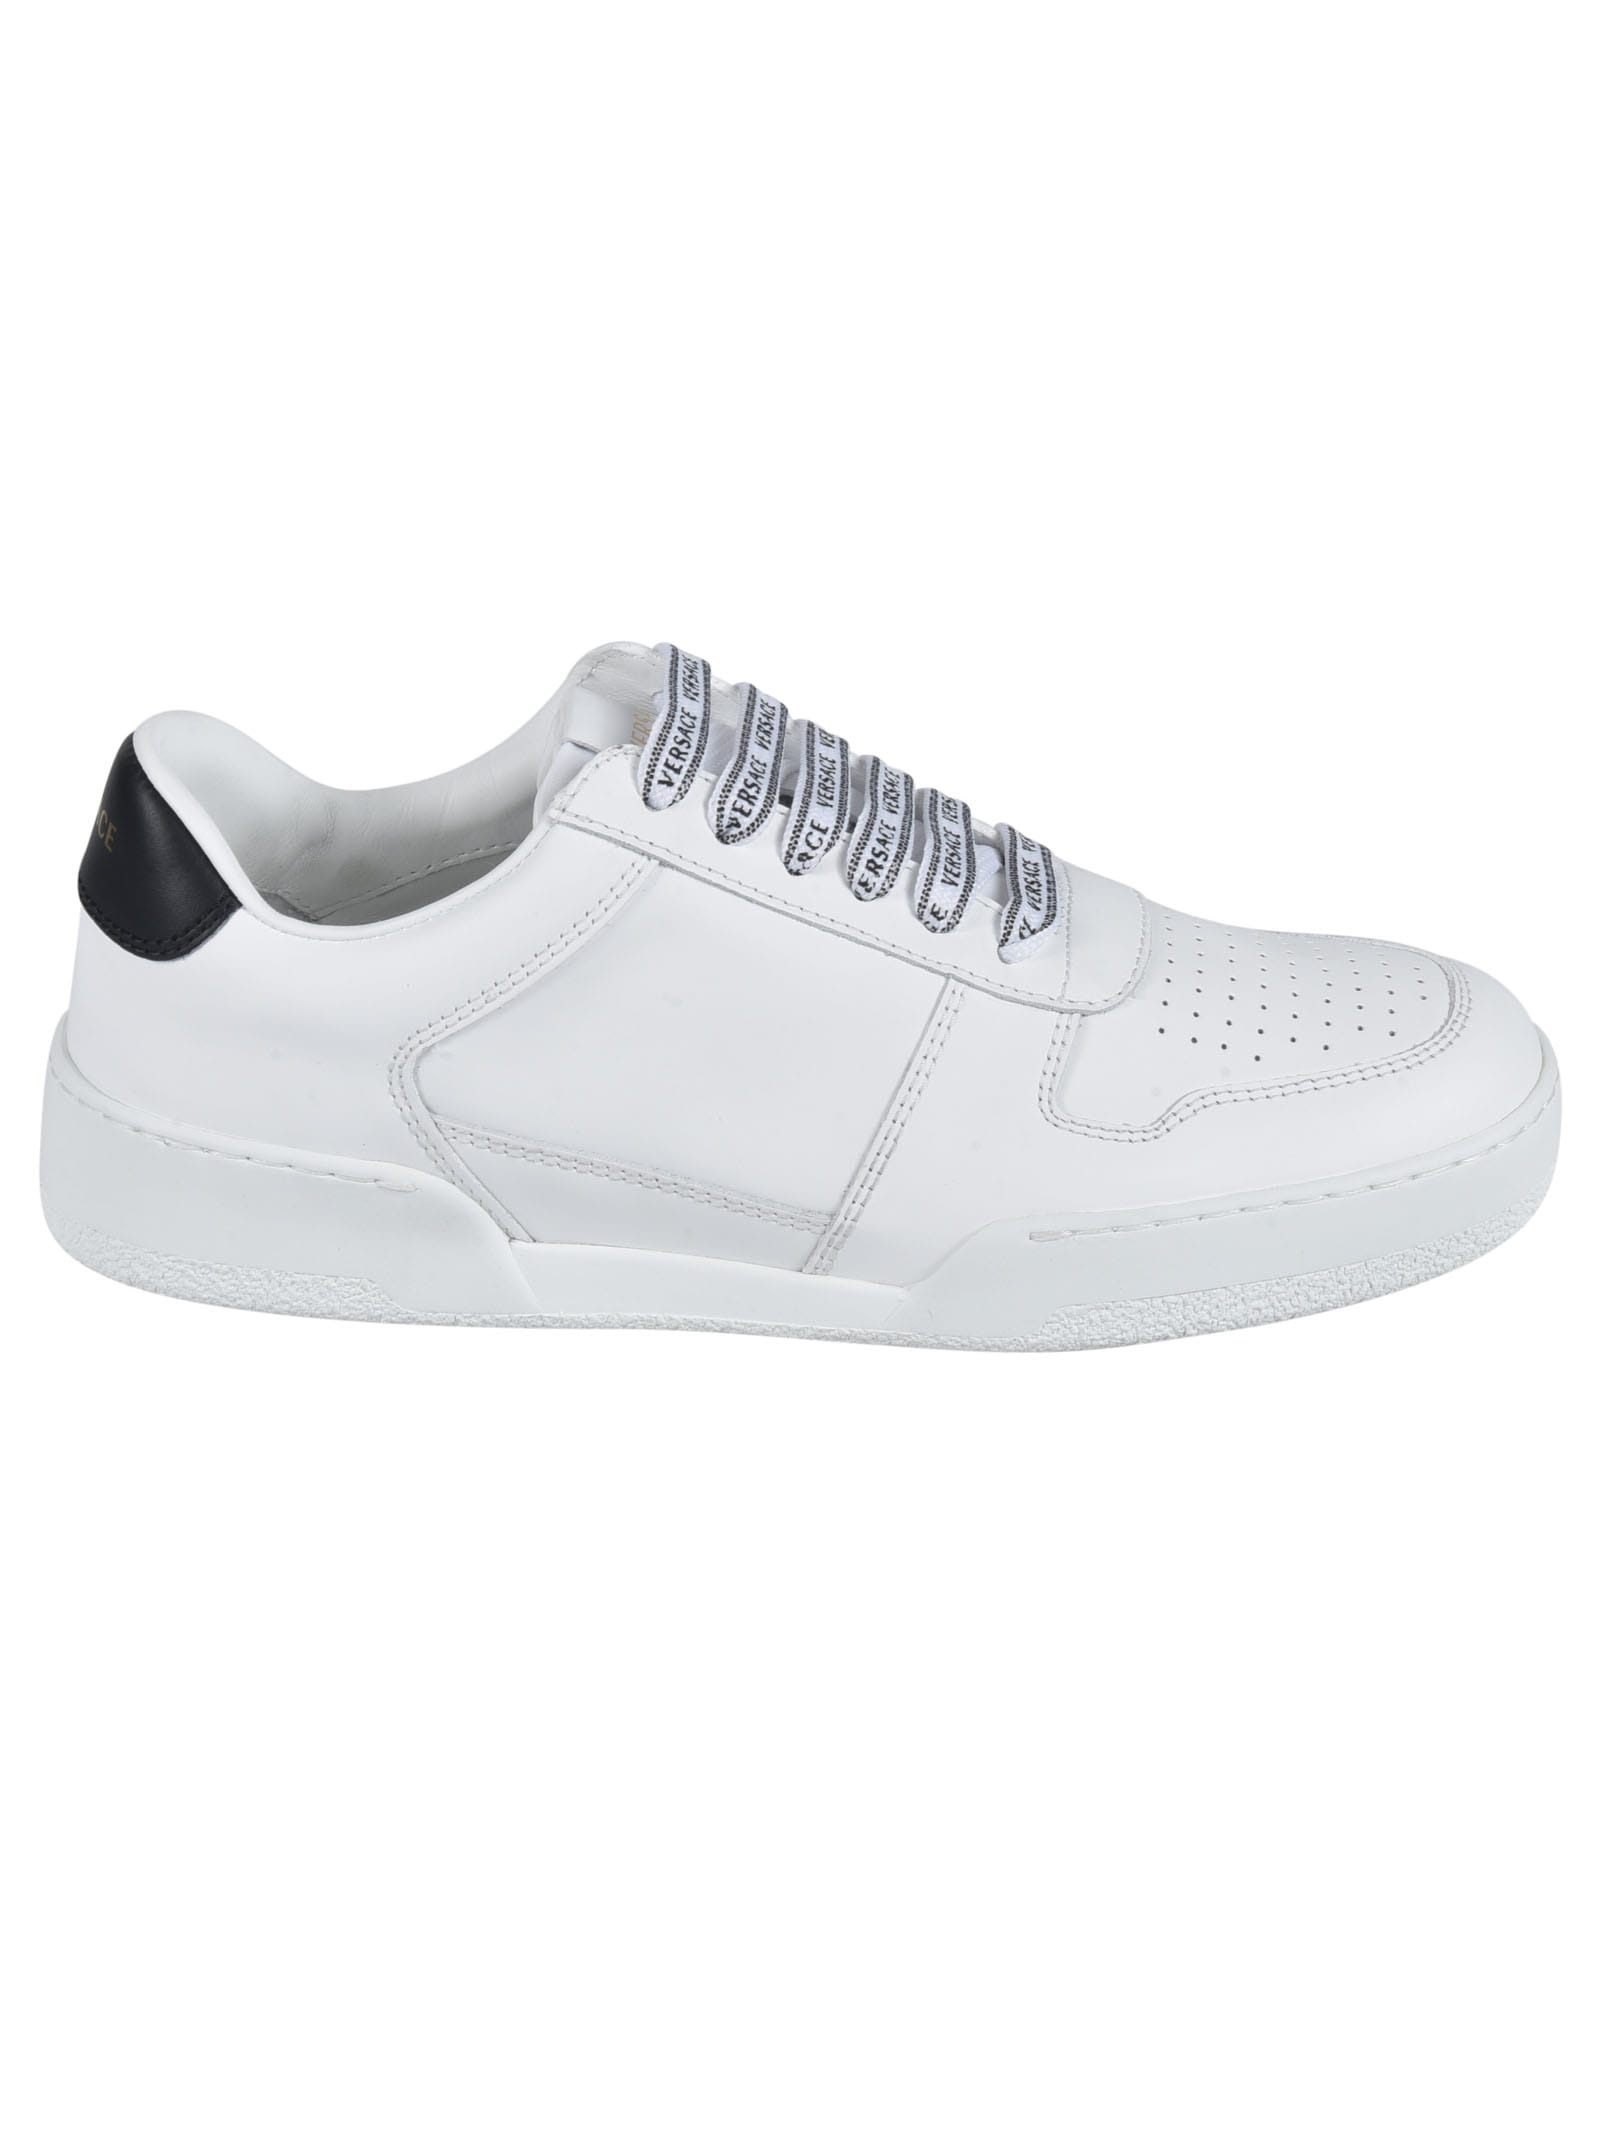 Versace Leathers PERFORATED DETAIL LOGO LACE SNEAKERS